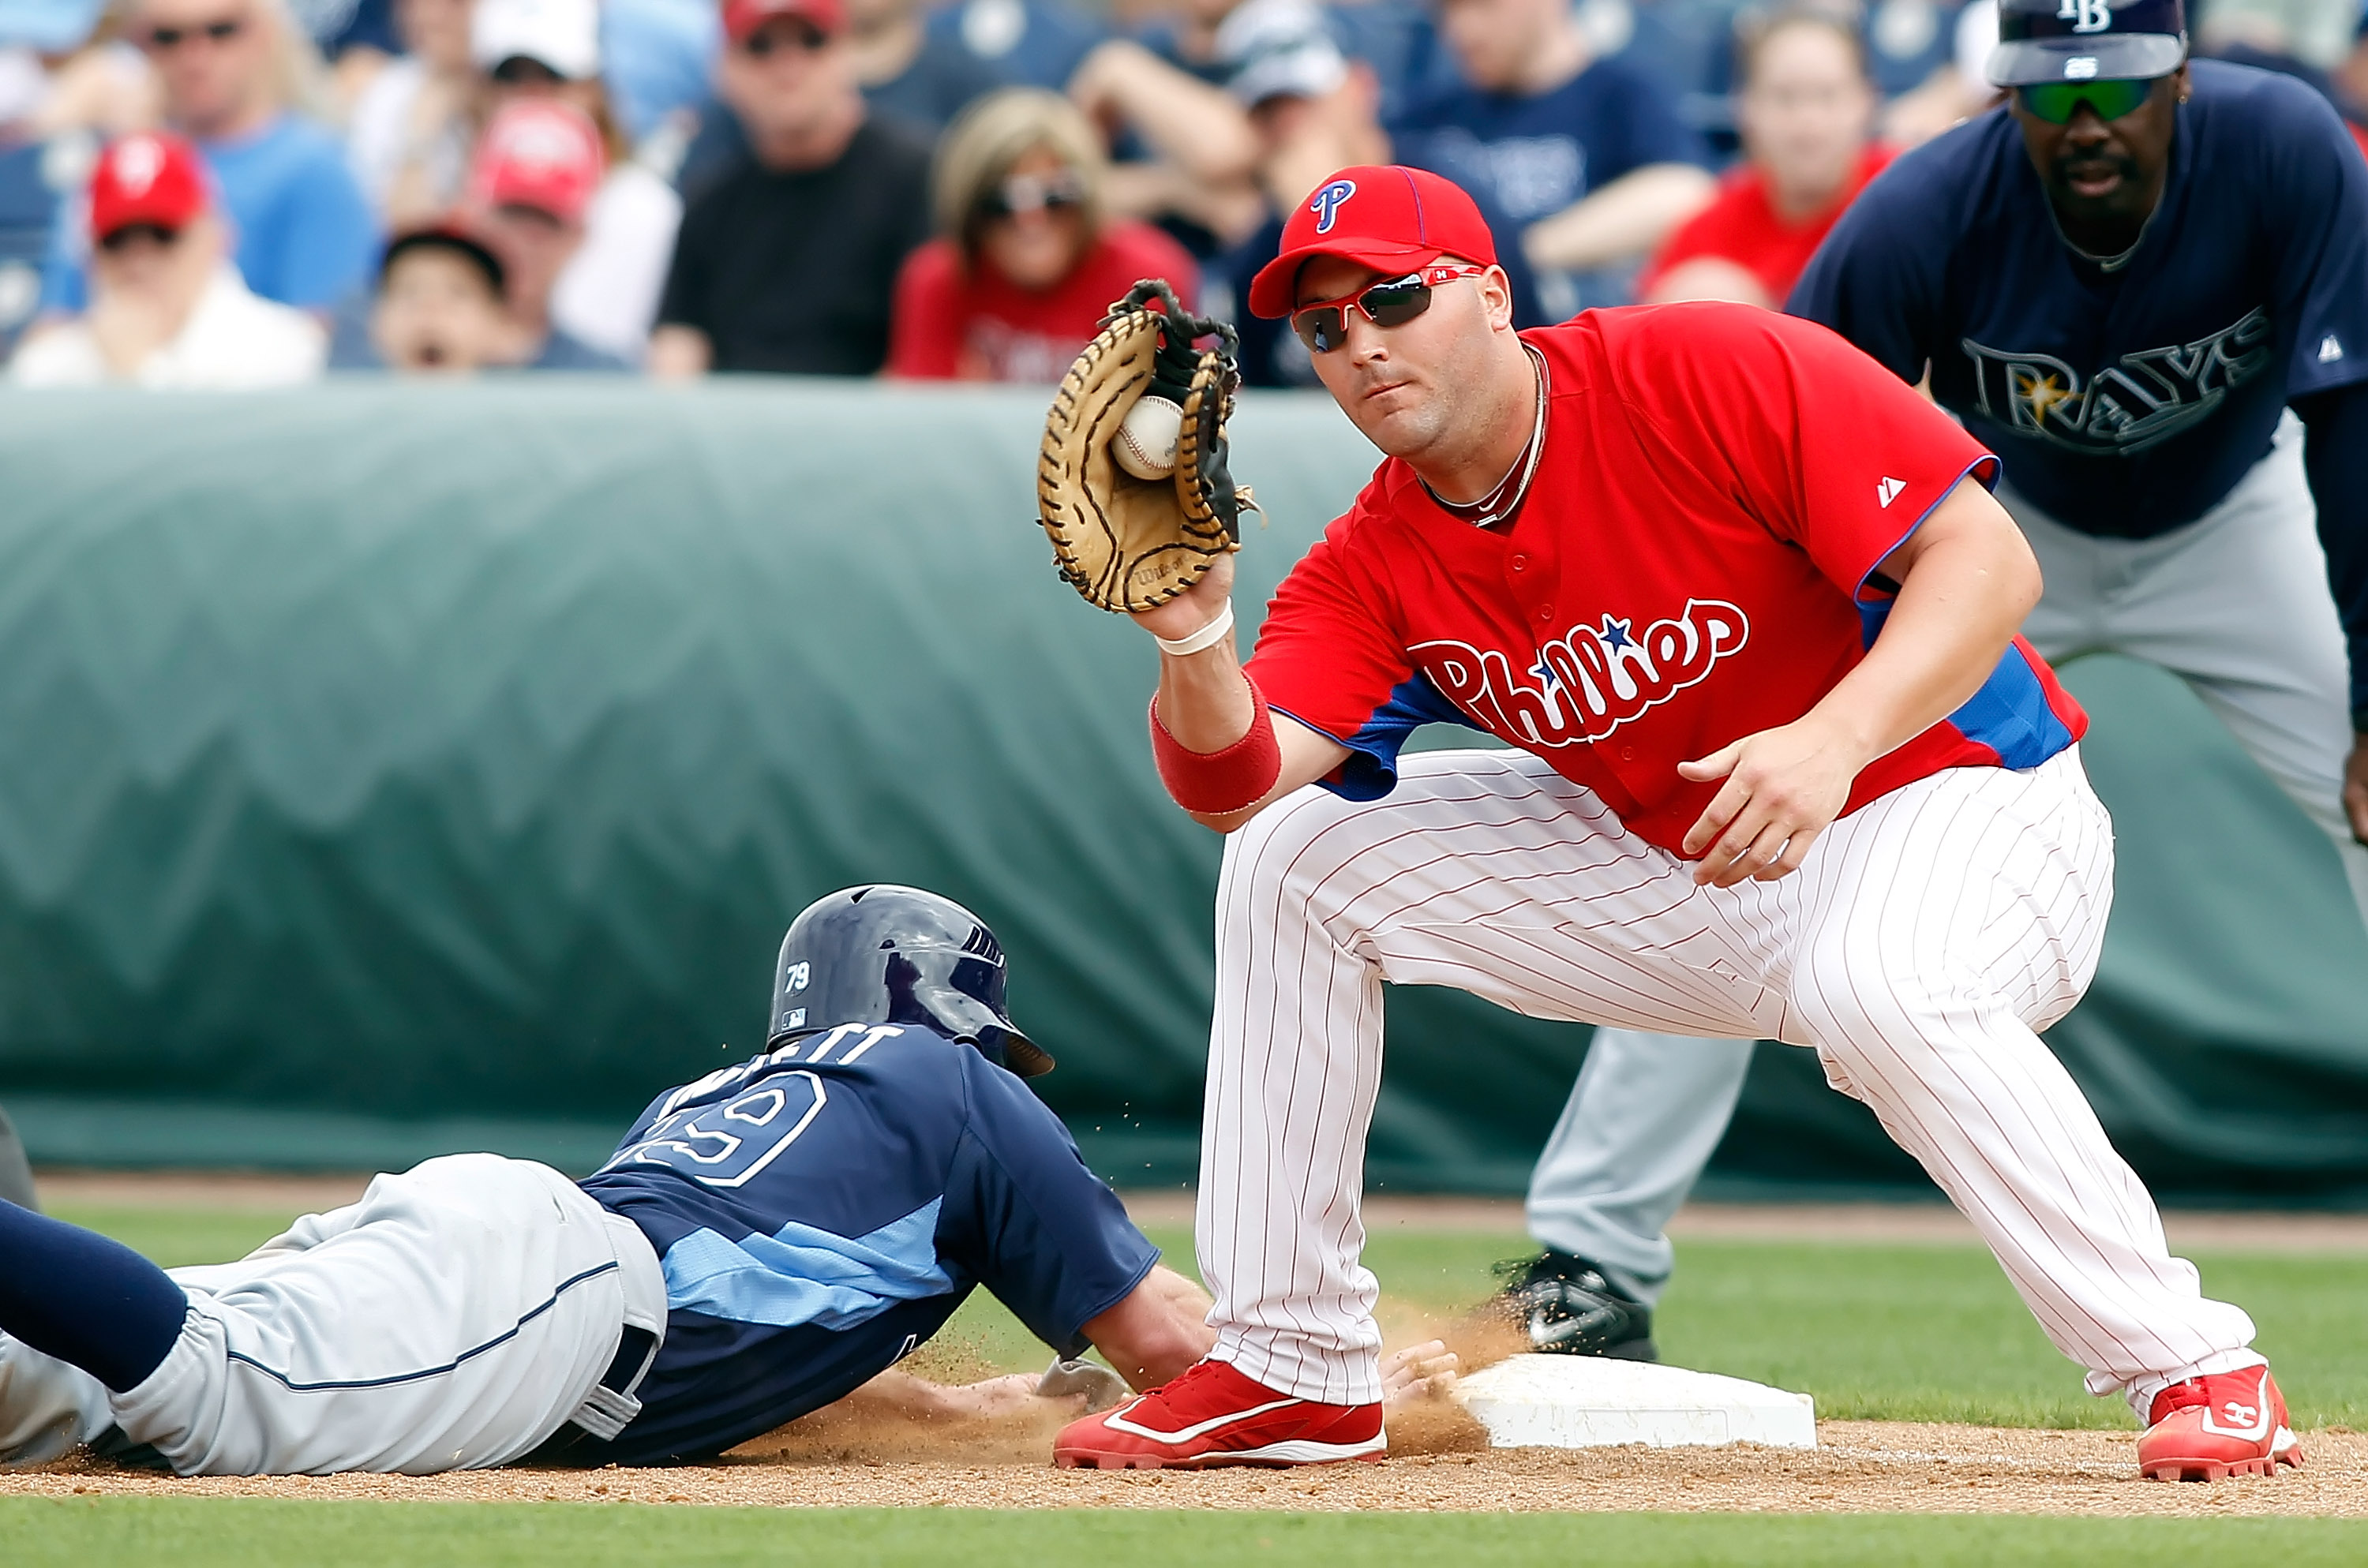 CLEARWATER, FL - MARCH 06:  First baseman Matt Rizzotti #76 of the Philadelphia Phillies takes the throw at first as Joe Inglett #79 of the Tampa Bay Rays gets back safely during a Grapefruit League Spring Training Game at Bright House Field on March 6, 2